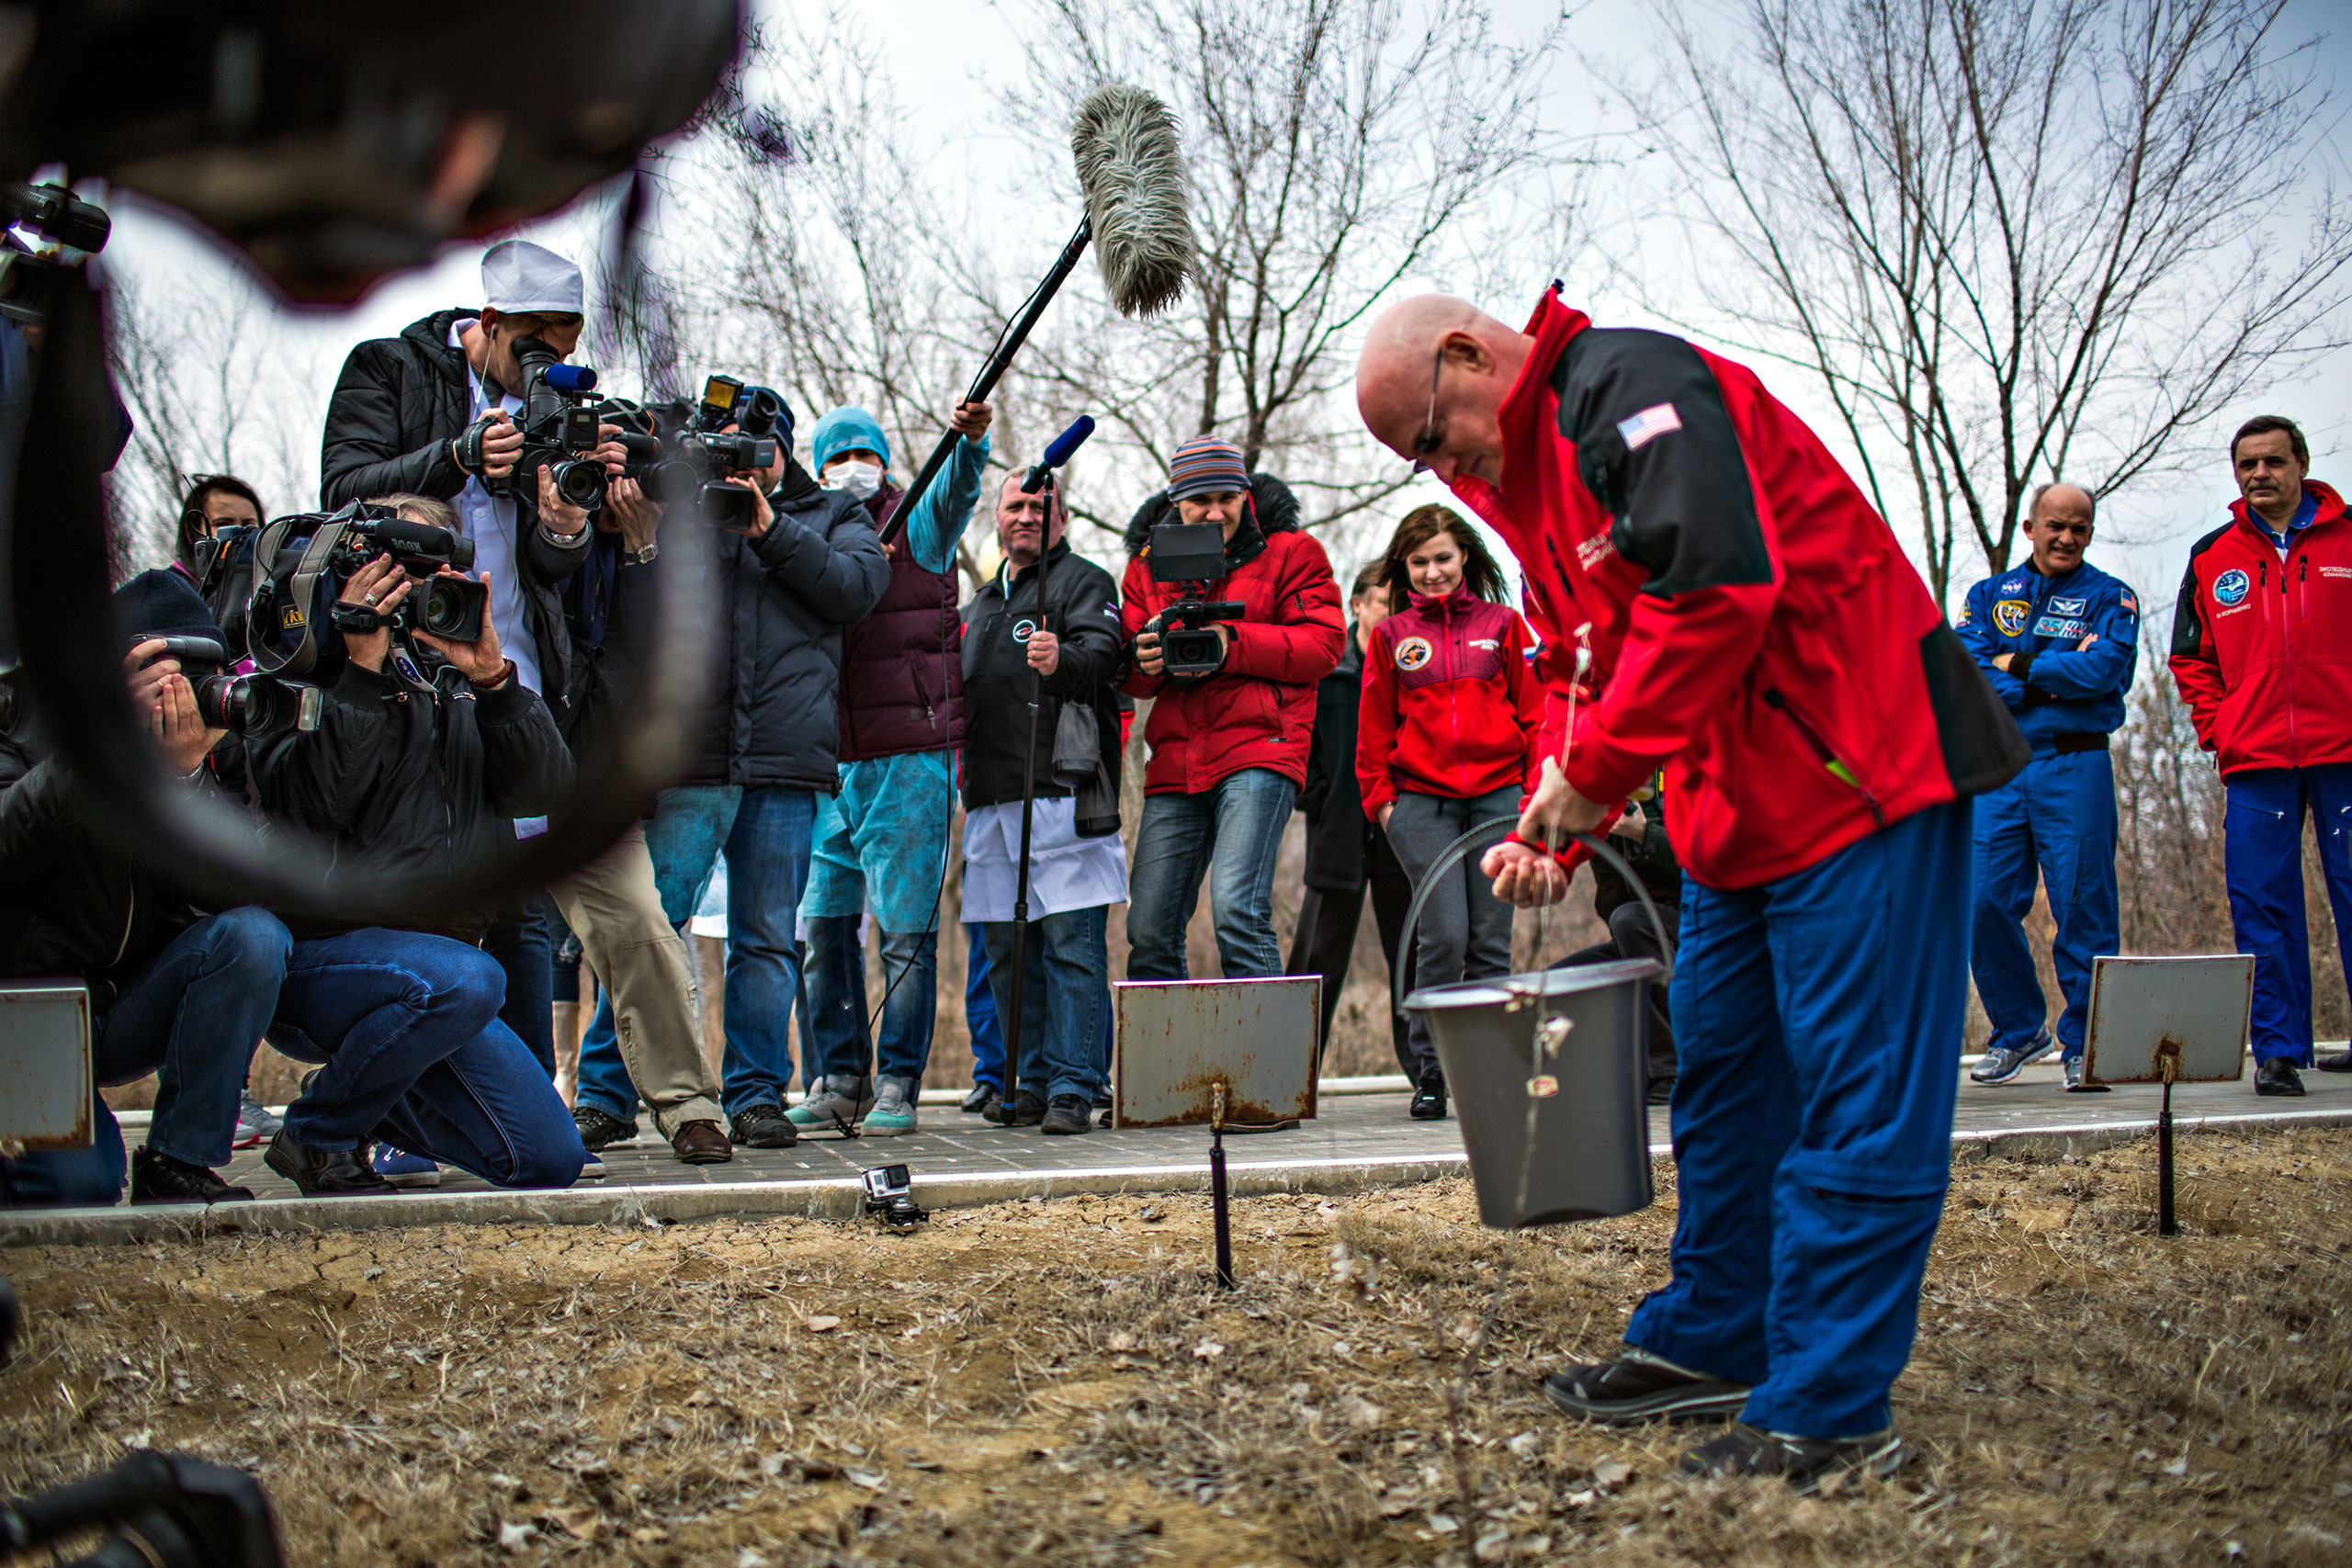 Scott Kelly waters the tree planted in his name in Baikonur, Kazhakstan on Saturday, March 21.